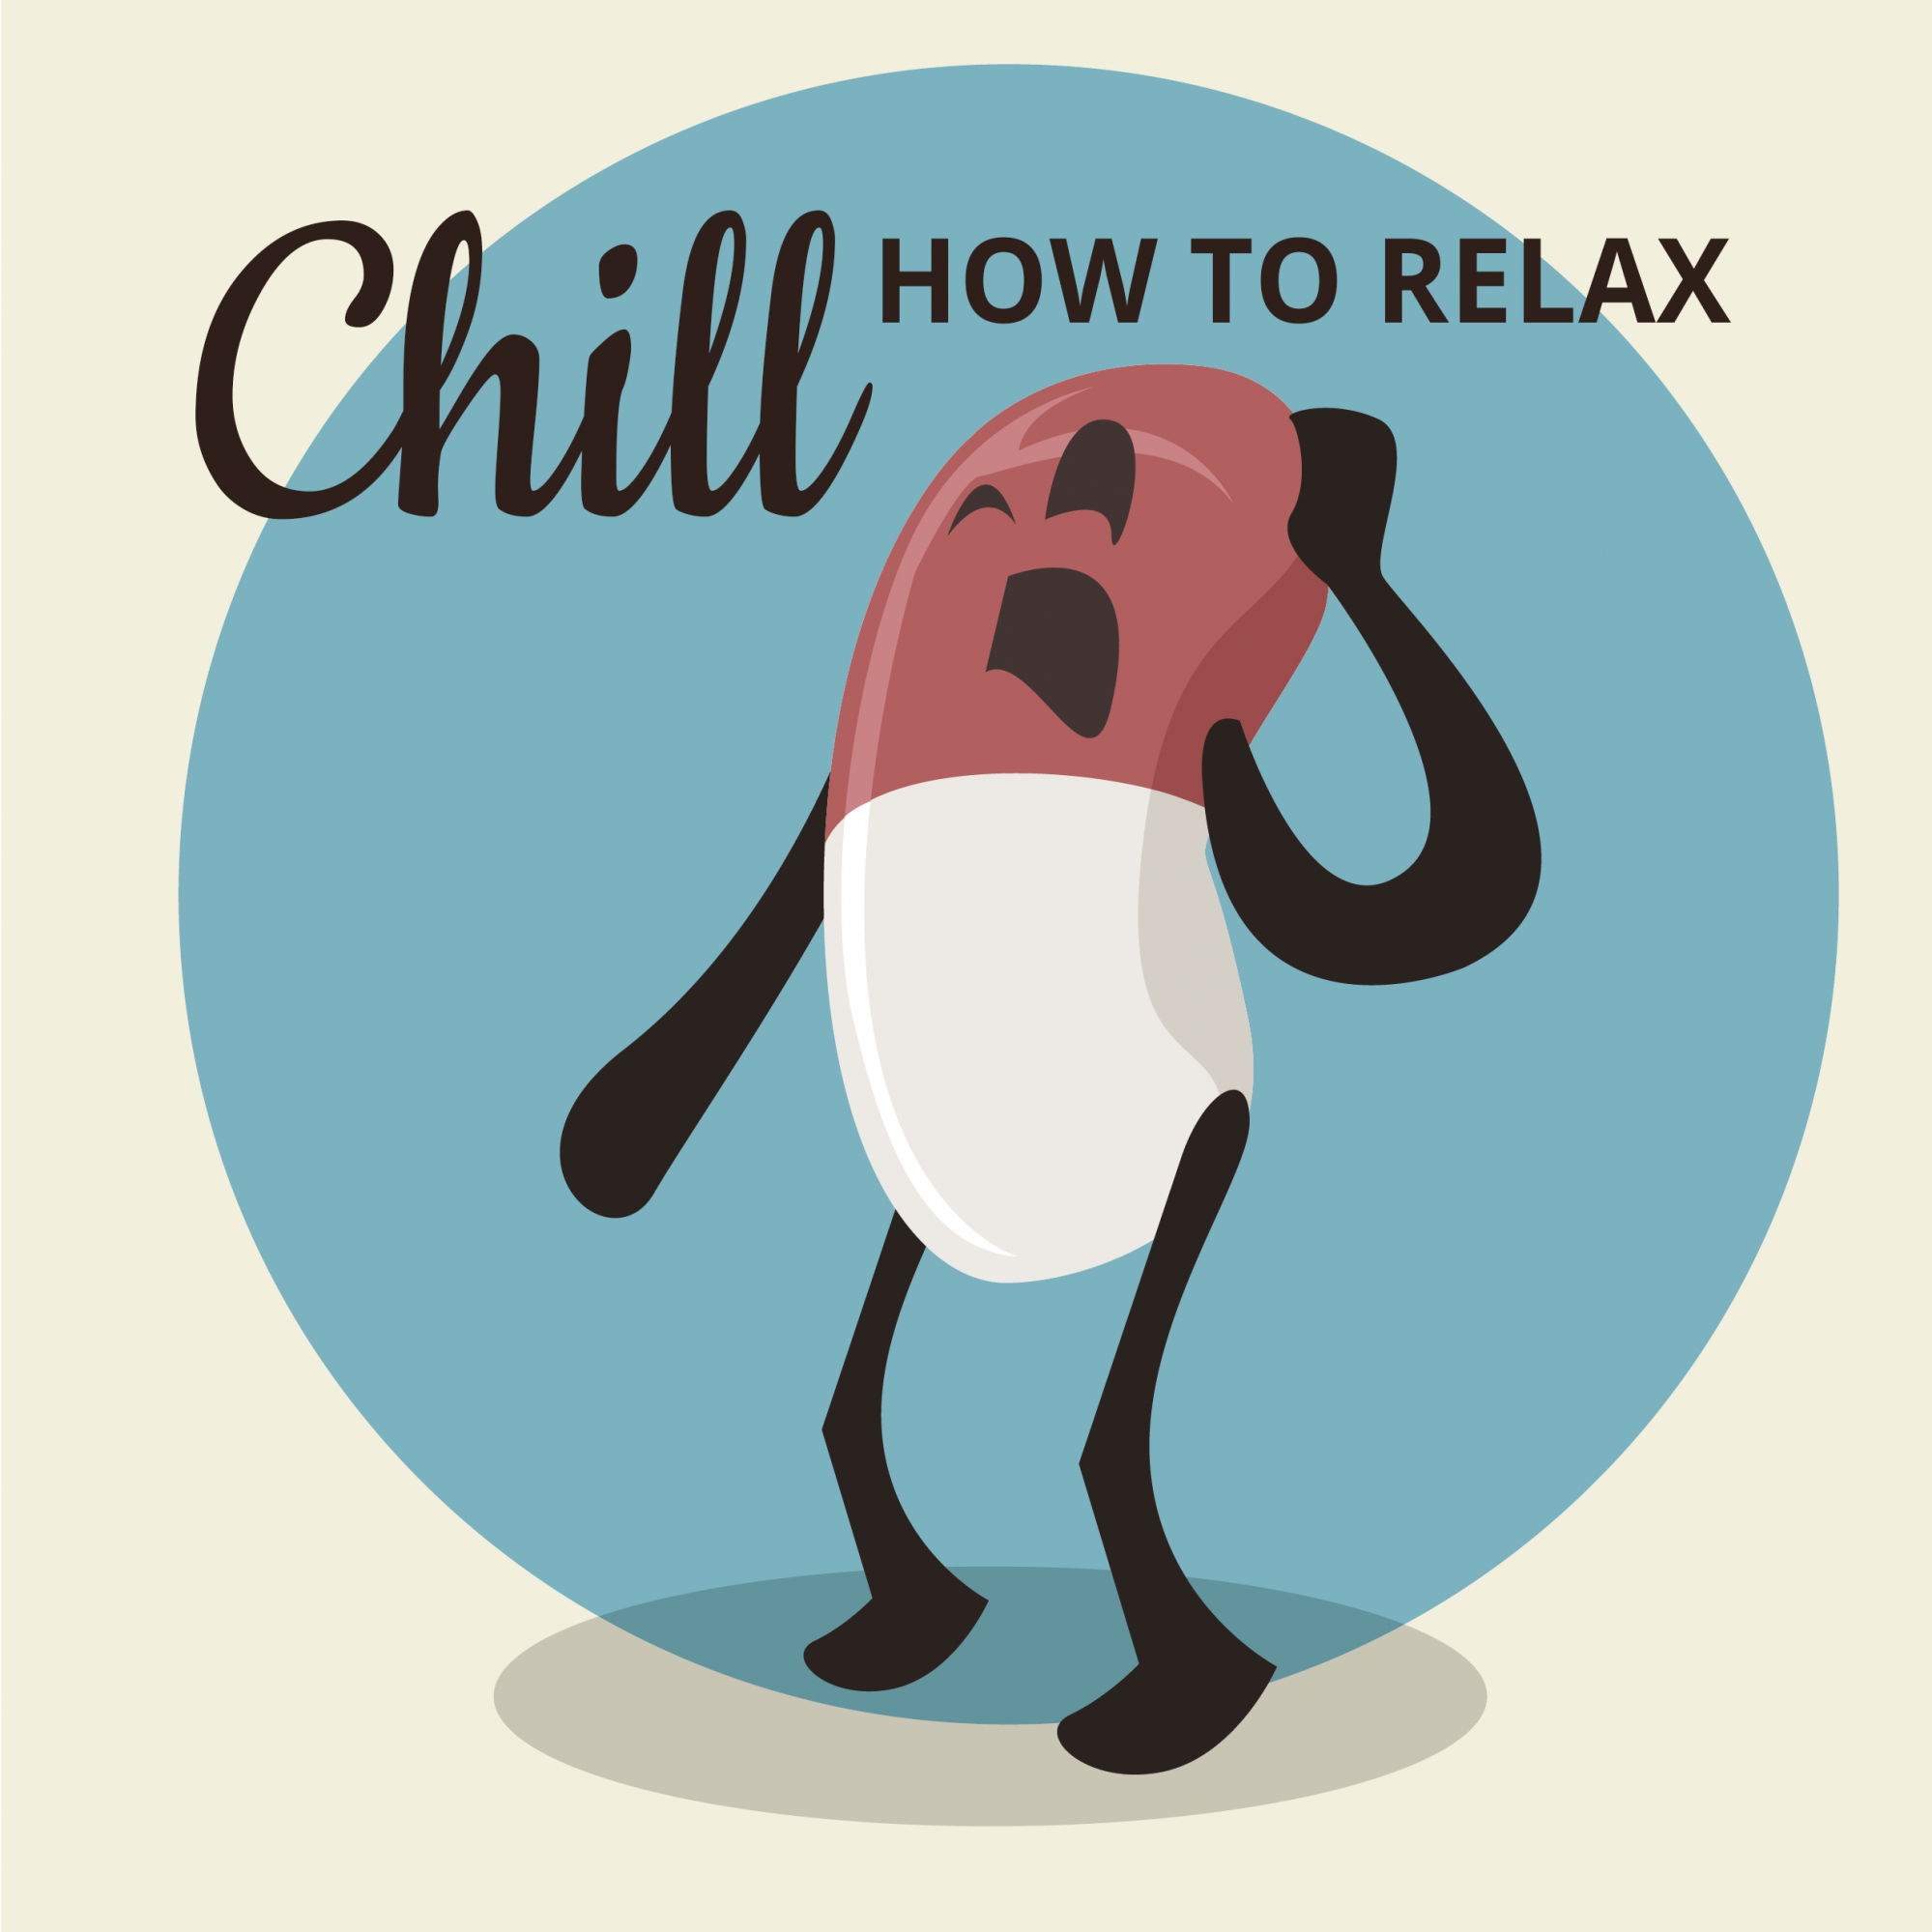 Chill: How to Relax